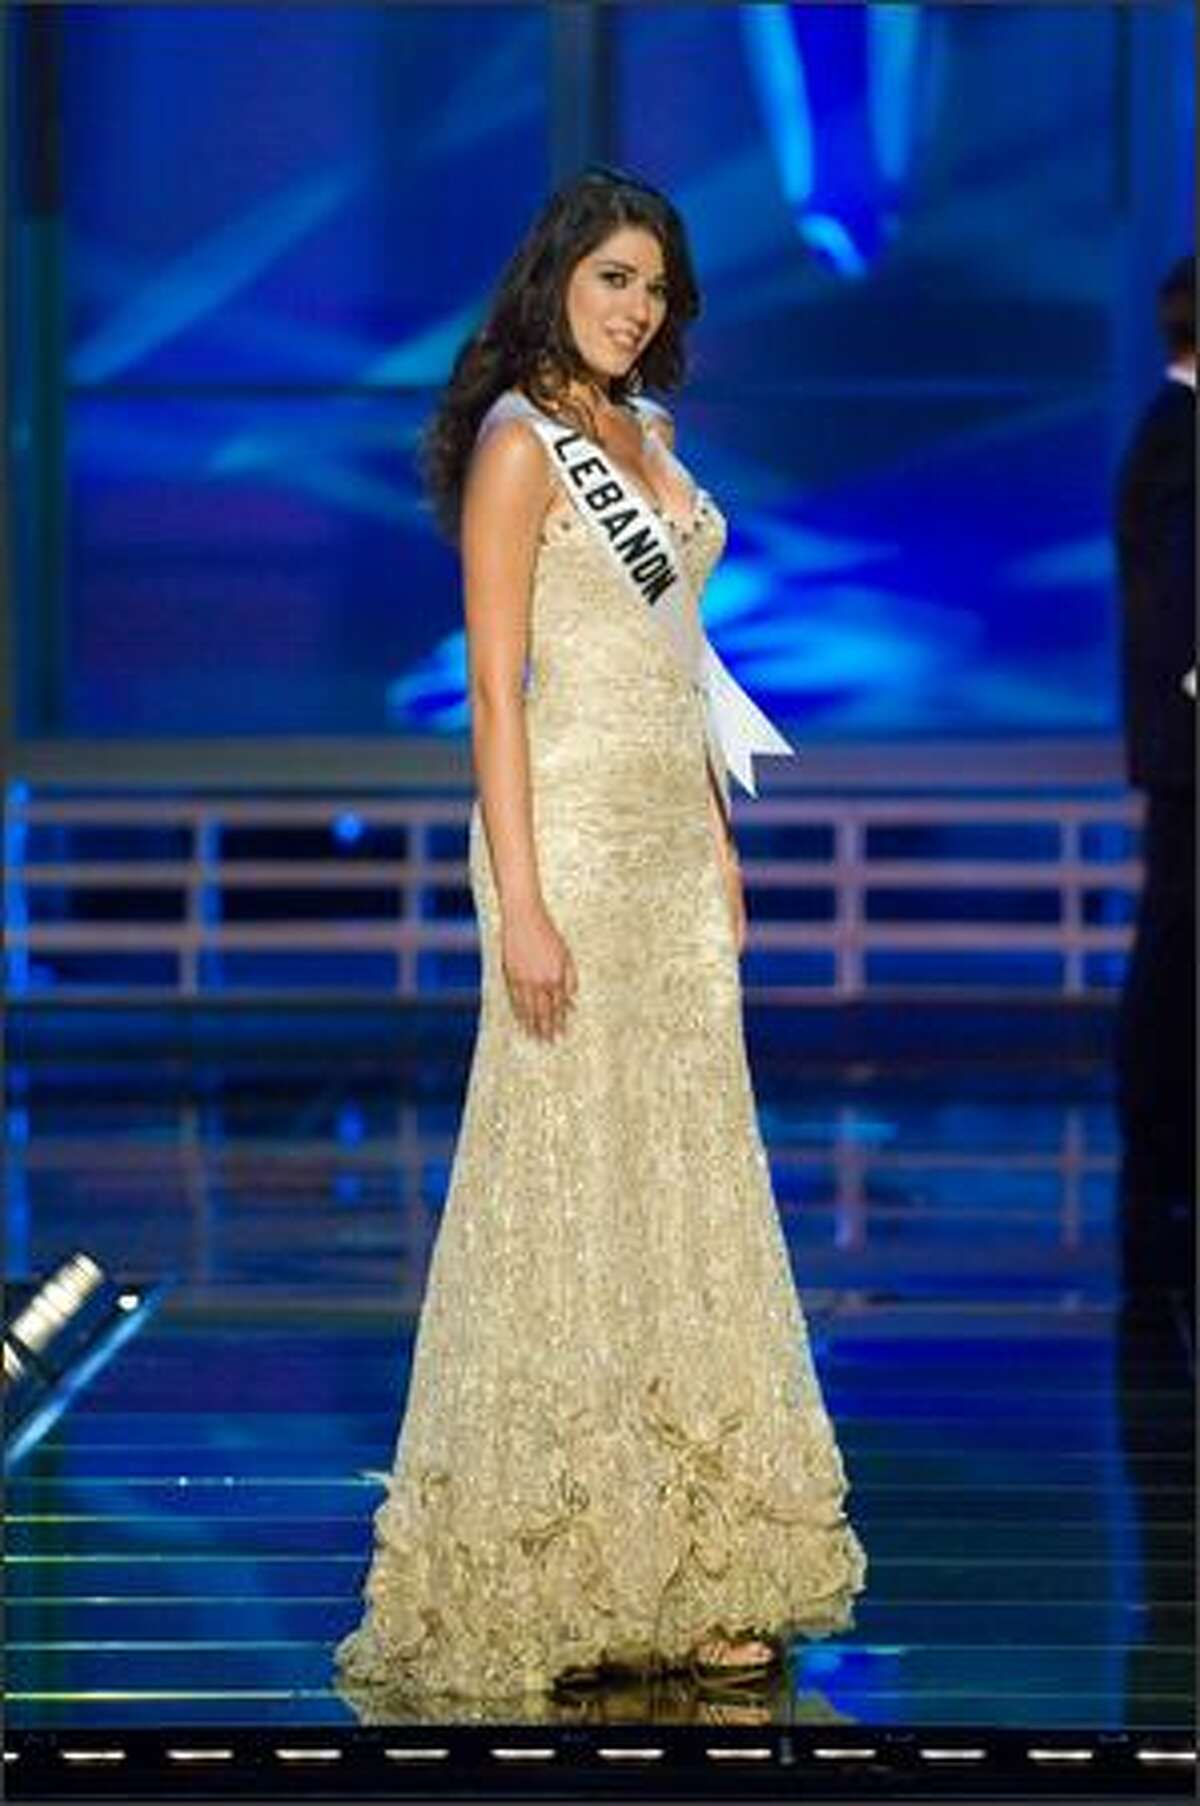 Nadine Njeim, Miss Lebanon 2007, competes in an evening gown of her choice during the 2007 Miss Universe Presentation Show at Auditorio Nacional in Mexico City on May 23. During the Presentation Show, each is judged by a preliminary panel of judges in individual interview, swimsuit and evening gown categories. The scores will be tallied and the top 15 contestants will be announced during the broadcast of the finals on May 28 (9 p.m. Pacific, tape-delayed).